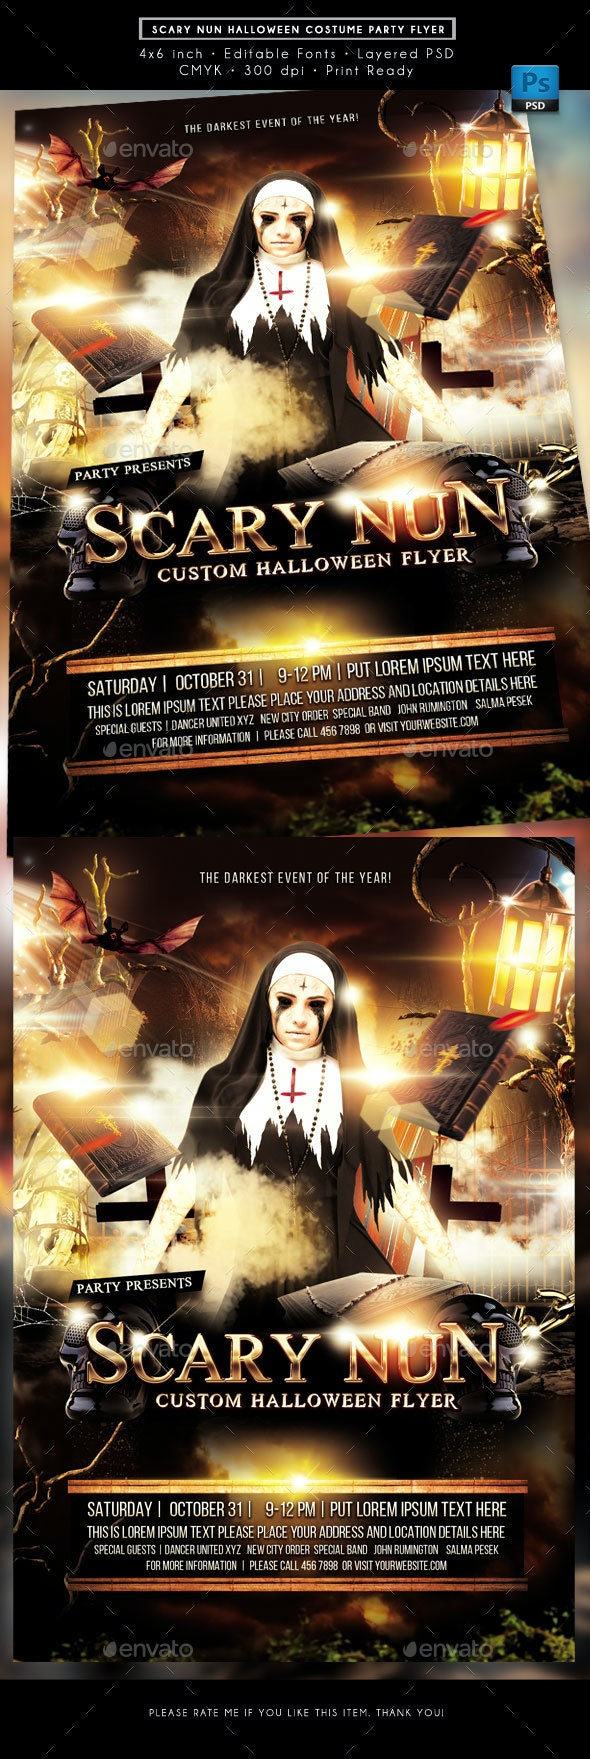 Scary Nun Halloween Costume Party Event Flyer - Holidays Events